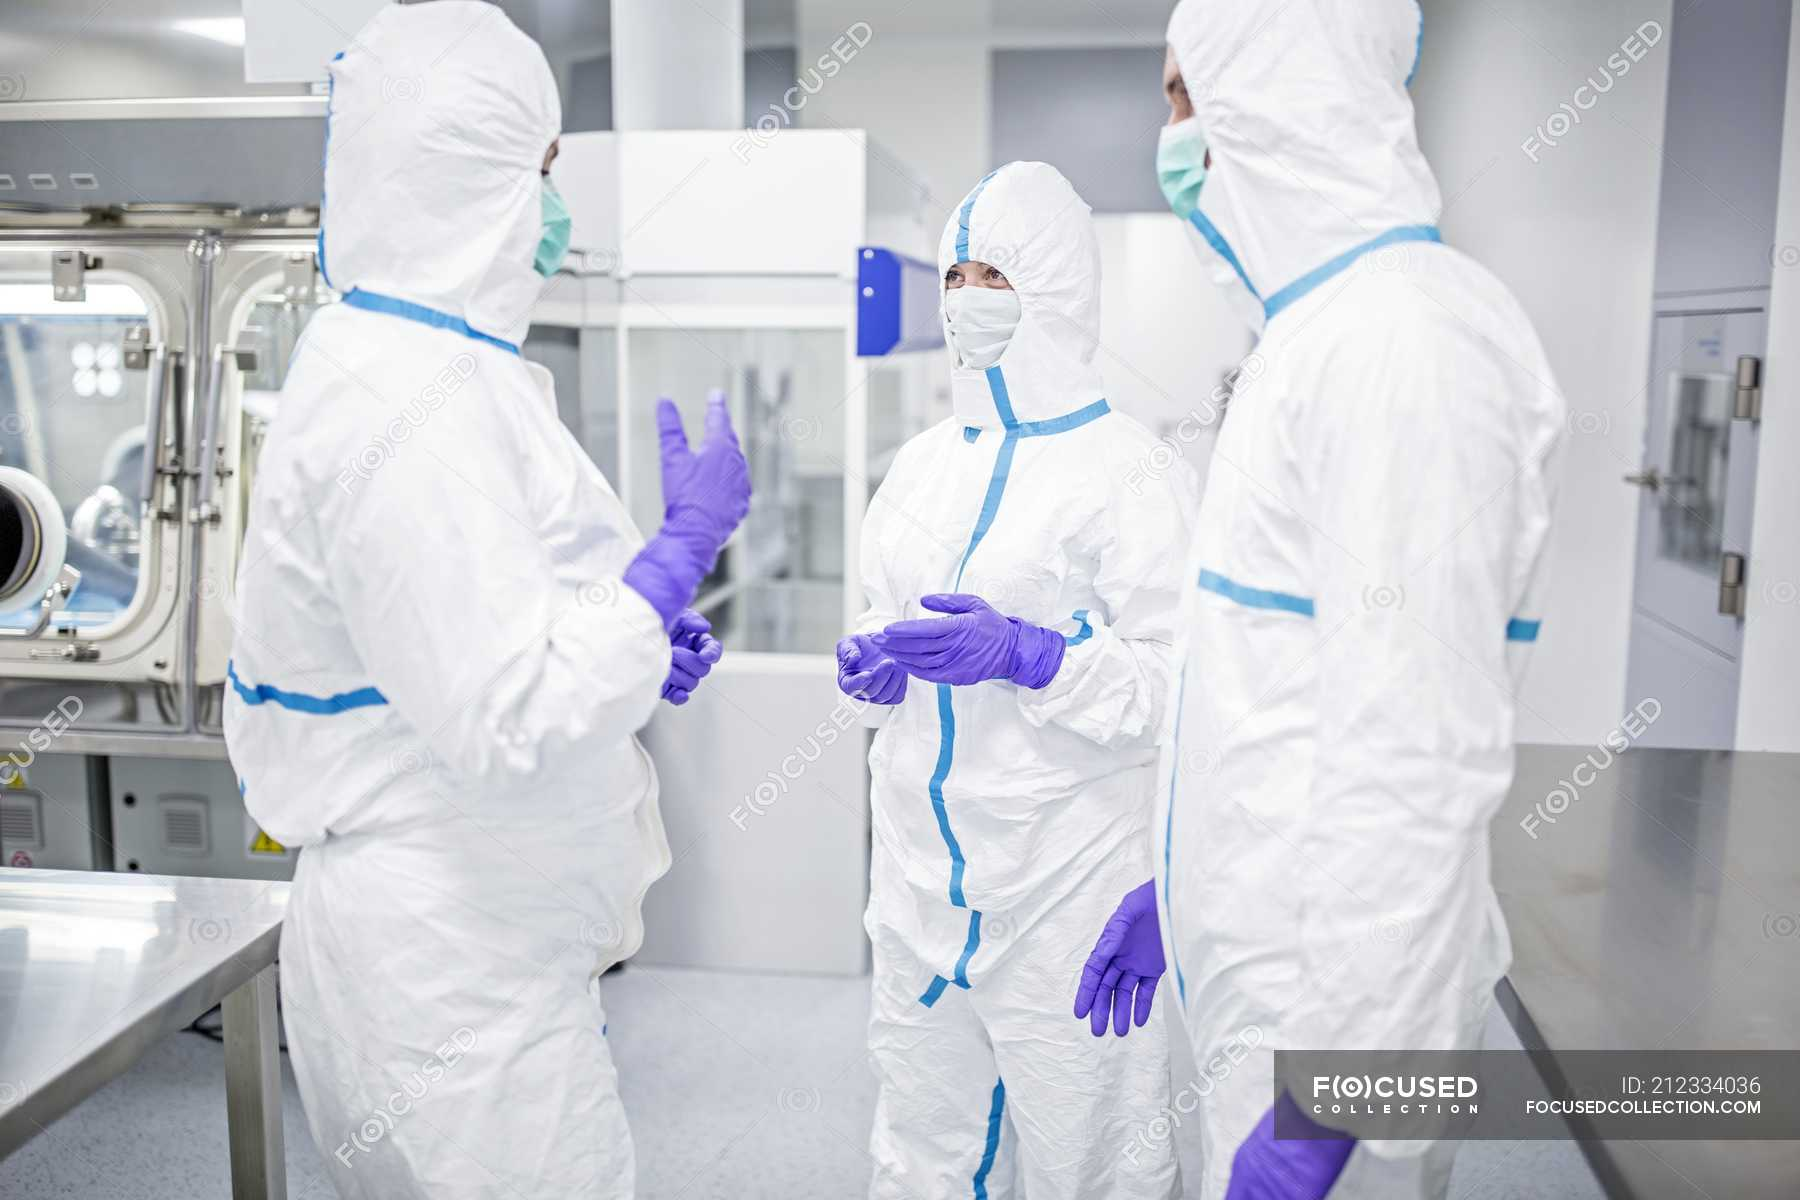 Lab technicians in protective suits and masks discussing in sterile